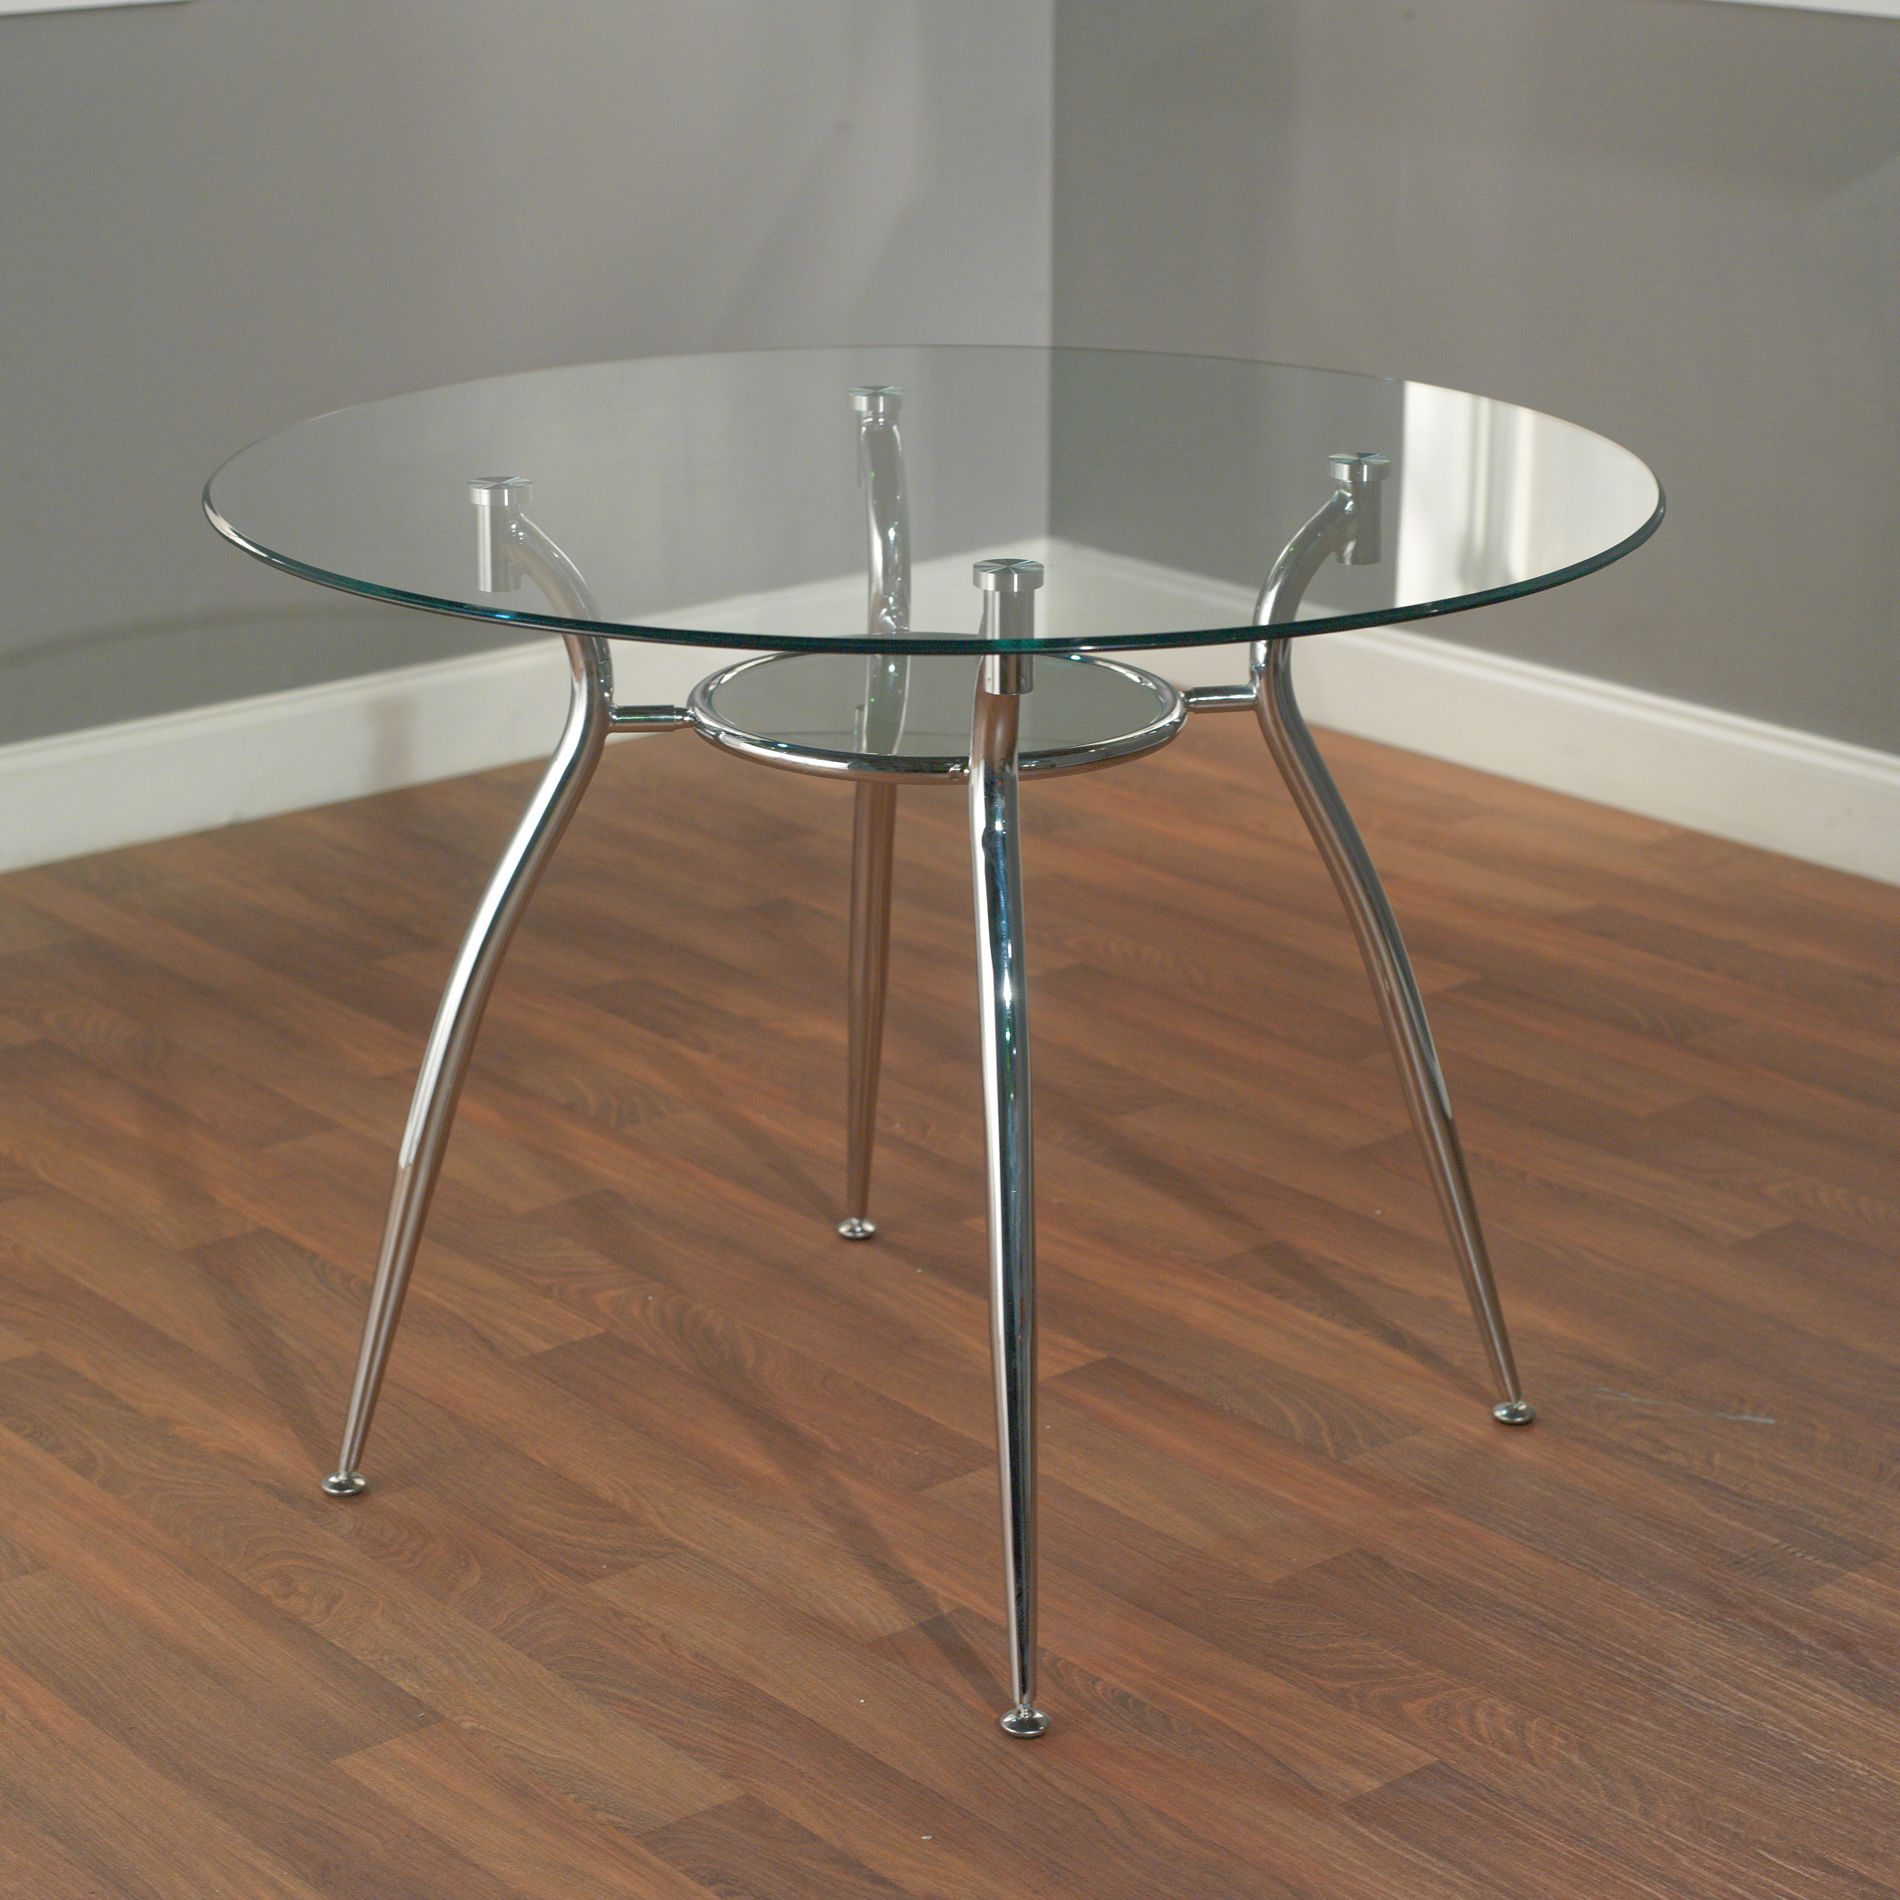 Overstock Com Online Shopping Bedding Furniture Electronics Jewelry Clothing More Glass Round Dining Table Glass Dining Table Metal Dining Table [ 1900 x 1900 Pixel ]